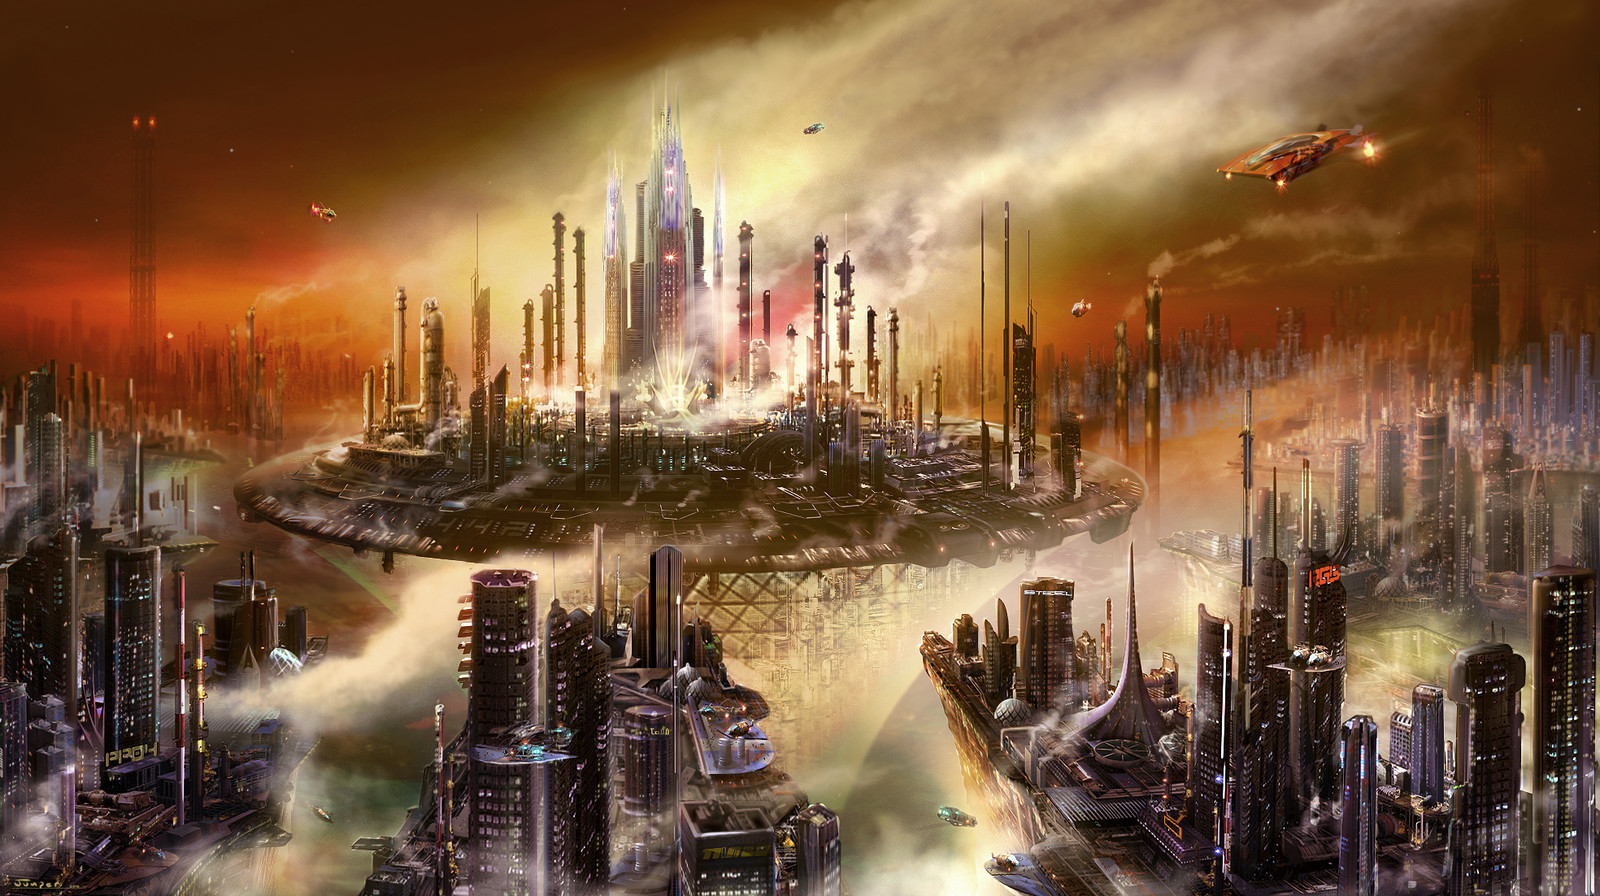 Terran Refinery city